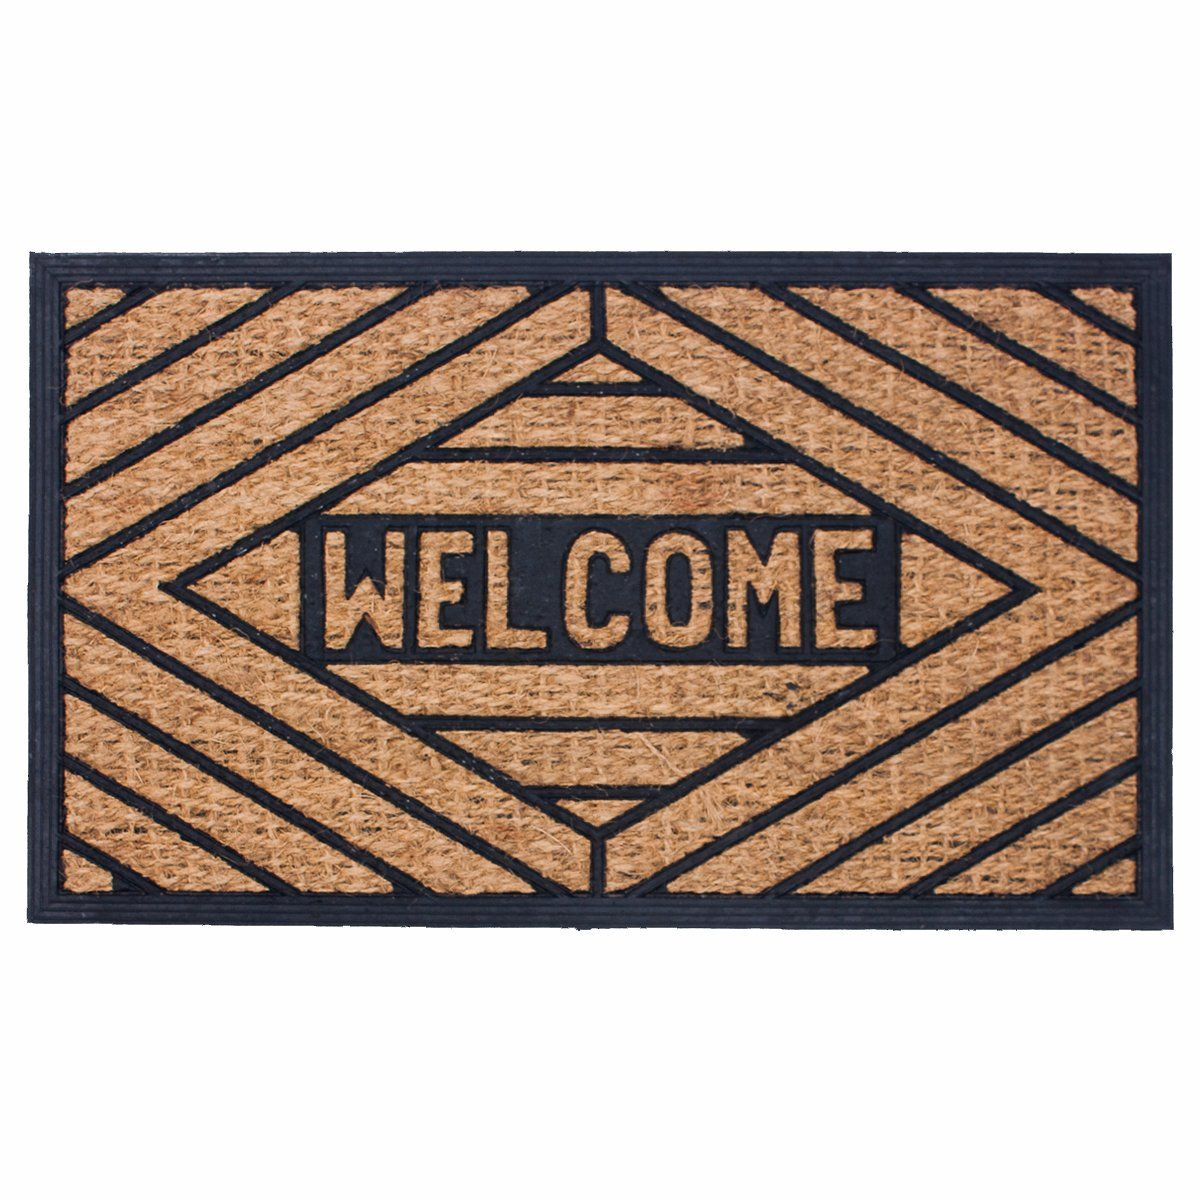 ultra resolutions doormatspacious barn pottery hd h mats of and from post w charming home front door interior doormat personalized lovely mat welcome x outdoor